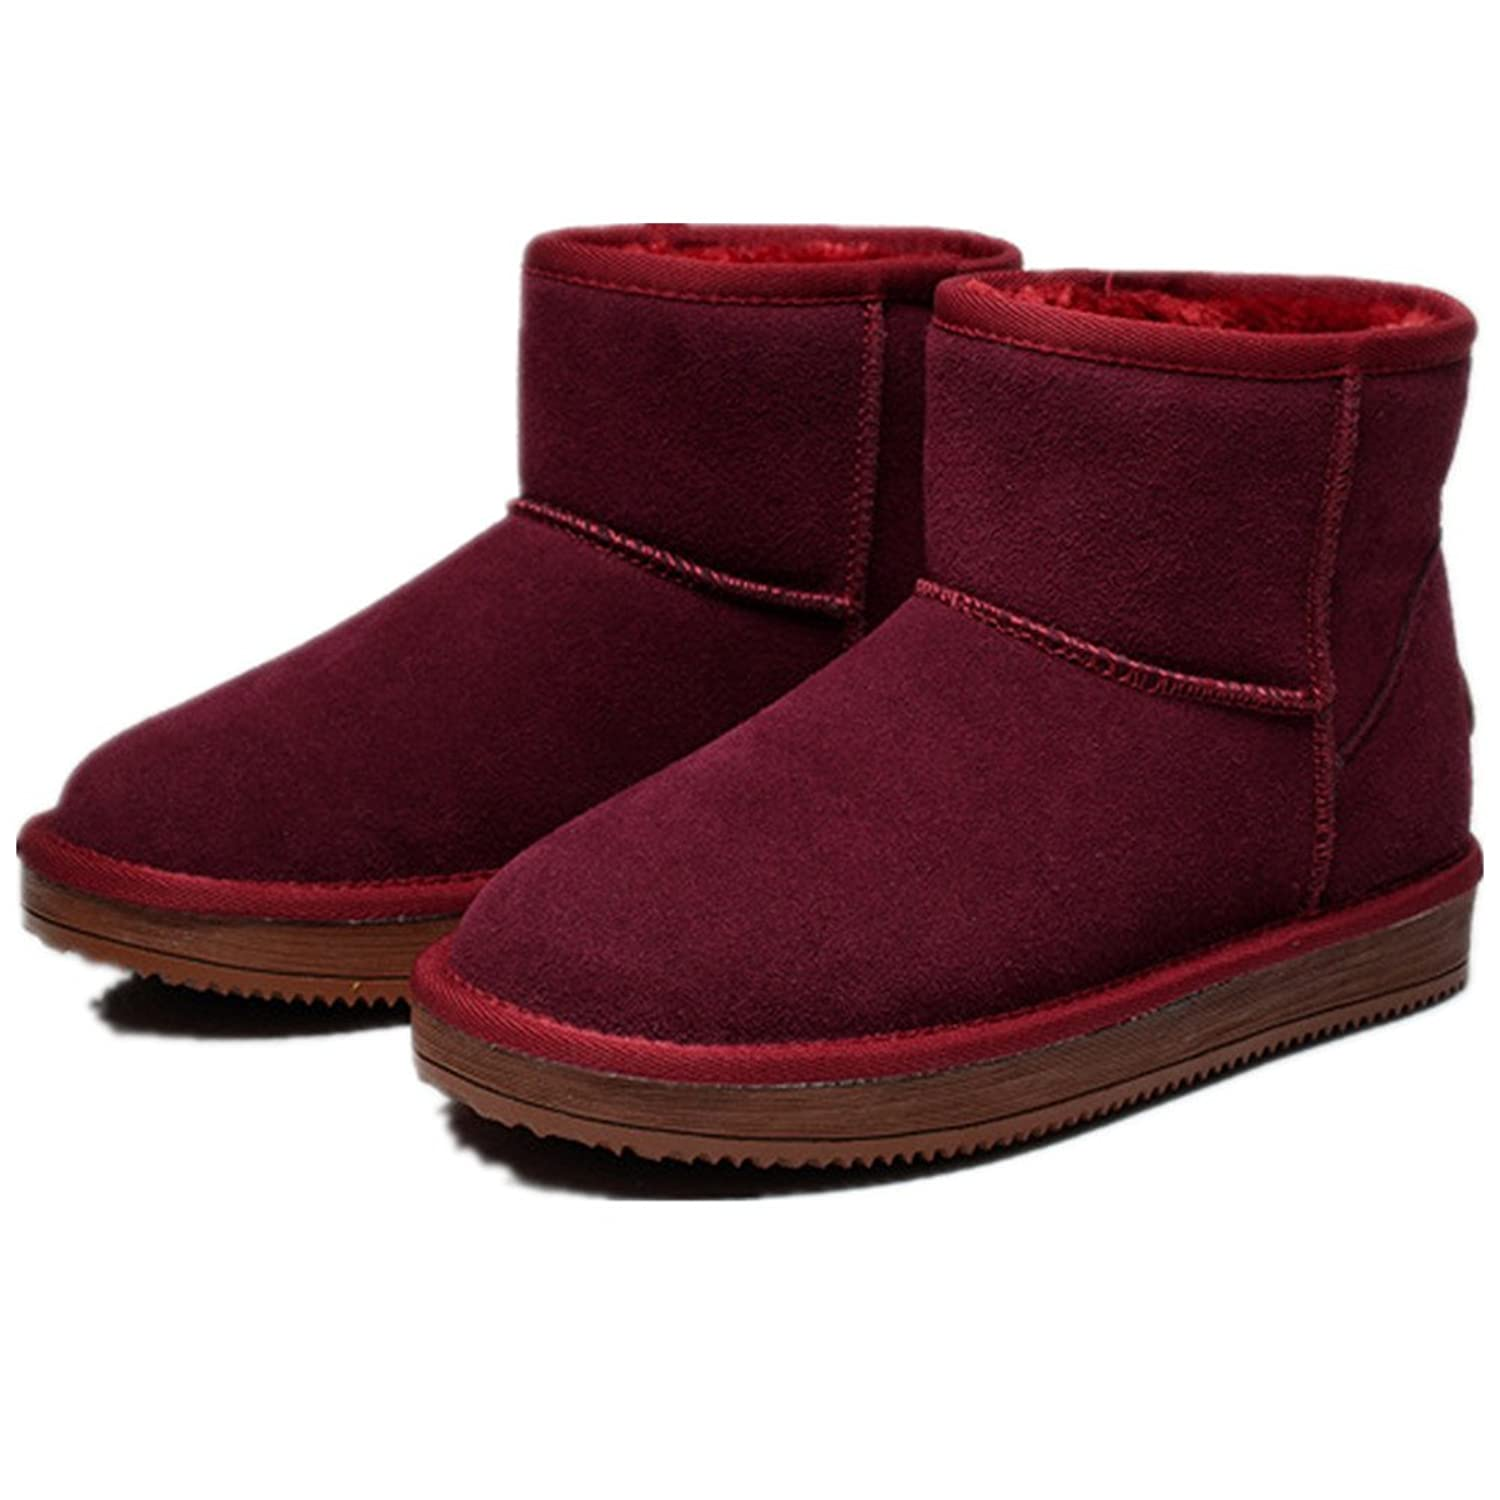 Fur Covered Womens Short version Snow Boots Fully Fur Lined Waterproof Winter Snow Boots Wine Red